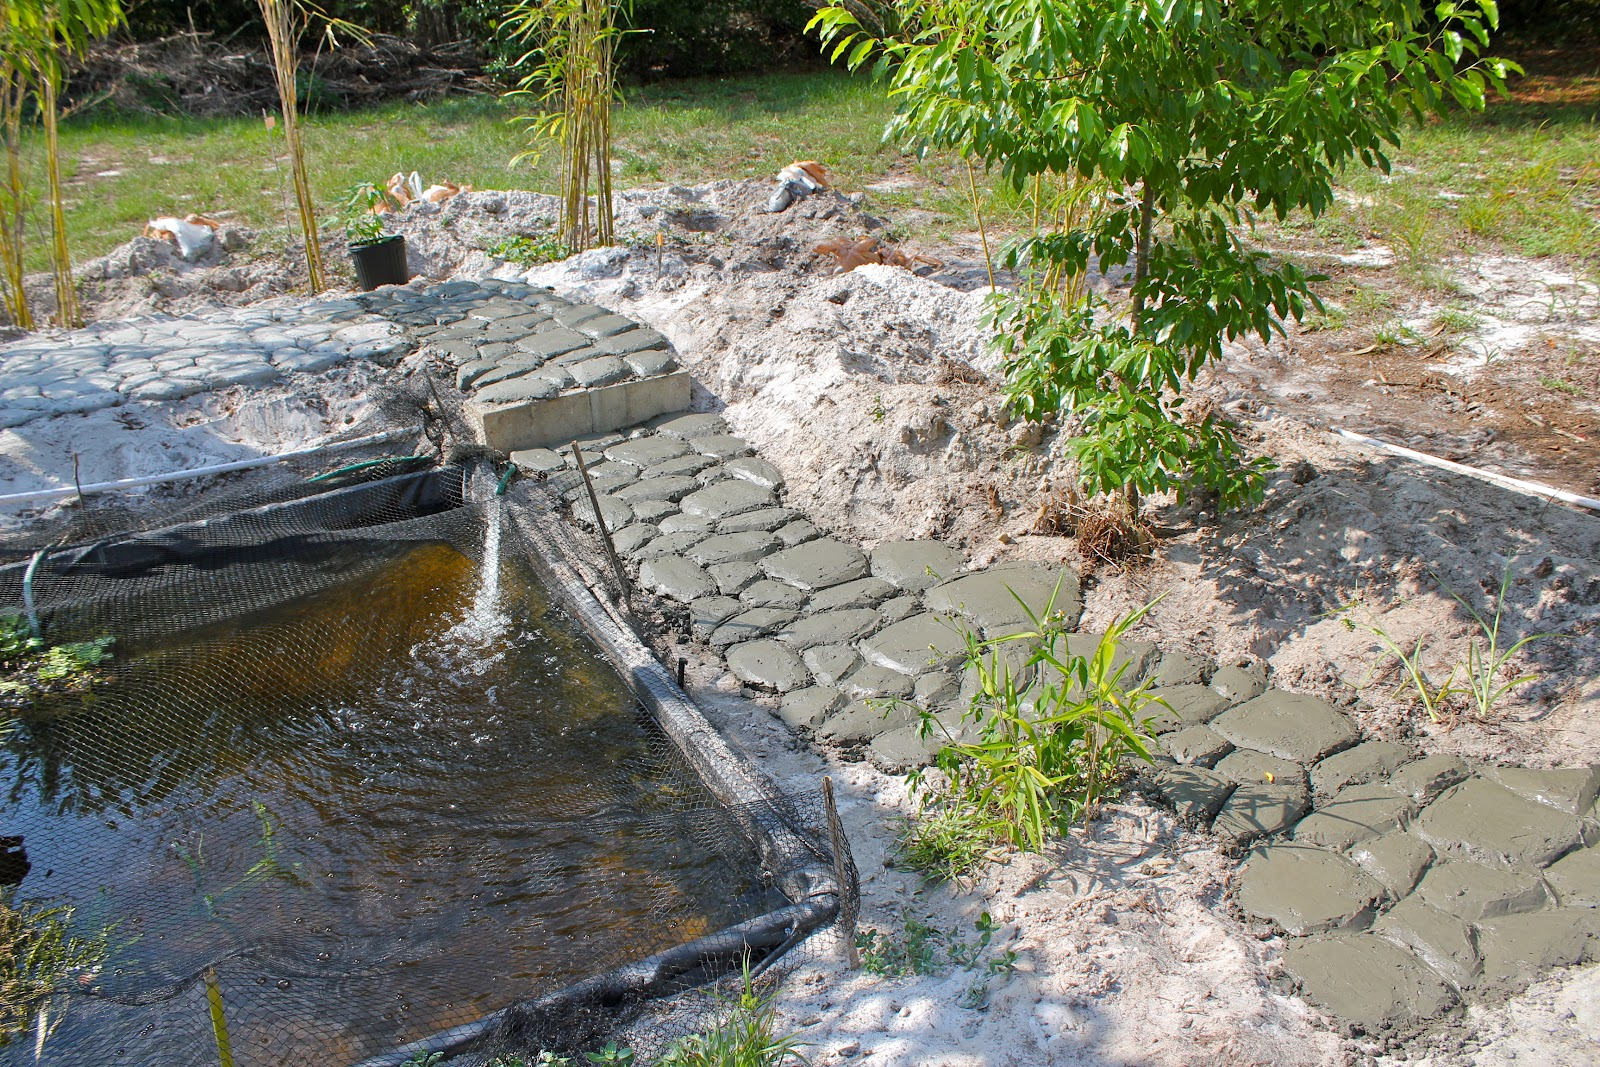 Fiercely hot florida phillip 39 s natural world for Concrete koi pond construction